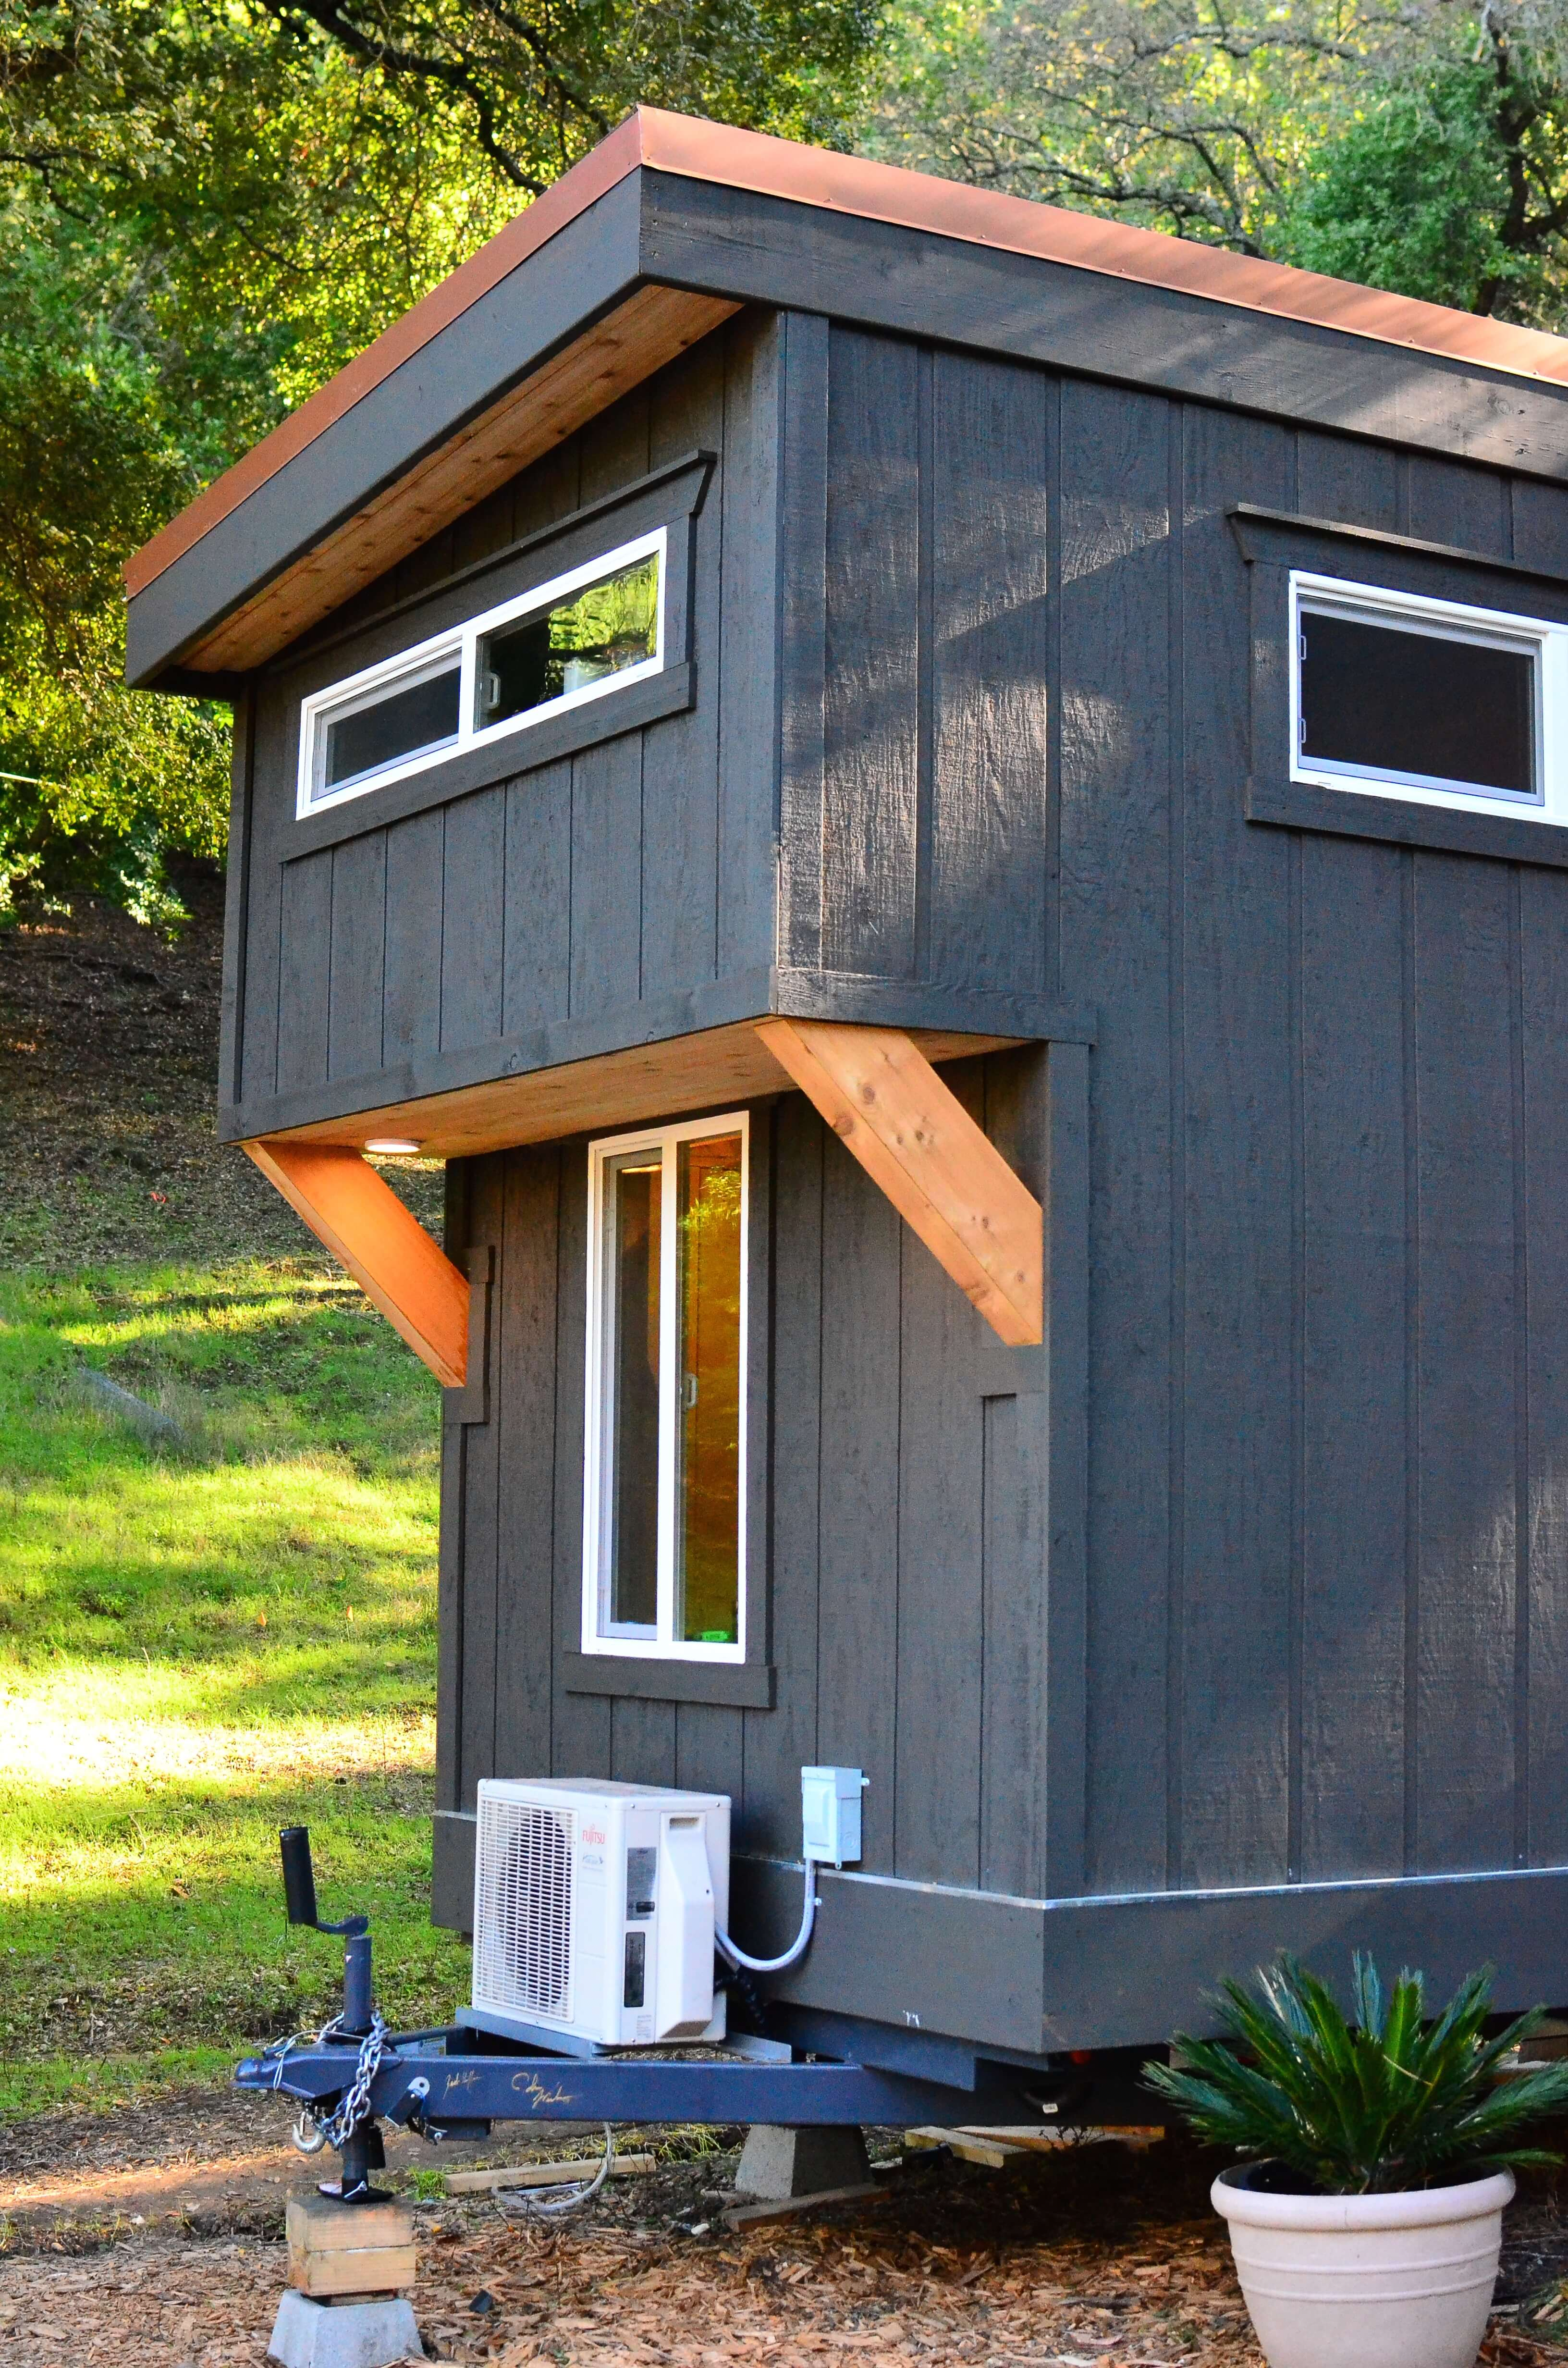 Stupendous Tiny House Walk Through Exterior Tiny House Basics Largest Home Design Picture Inspirations Pitcheantrous